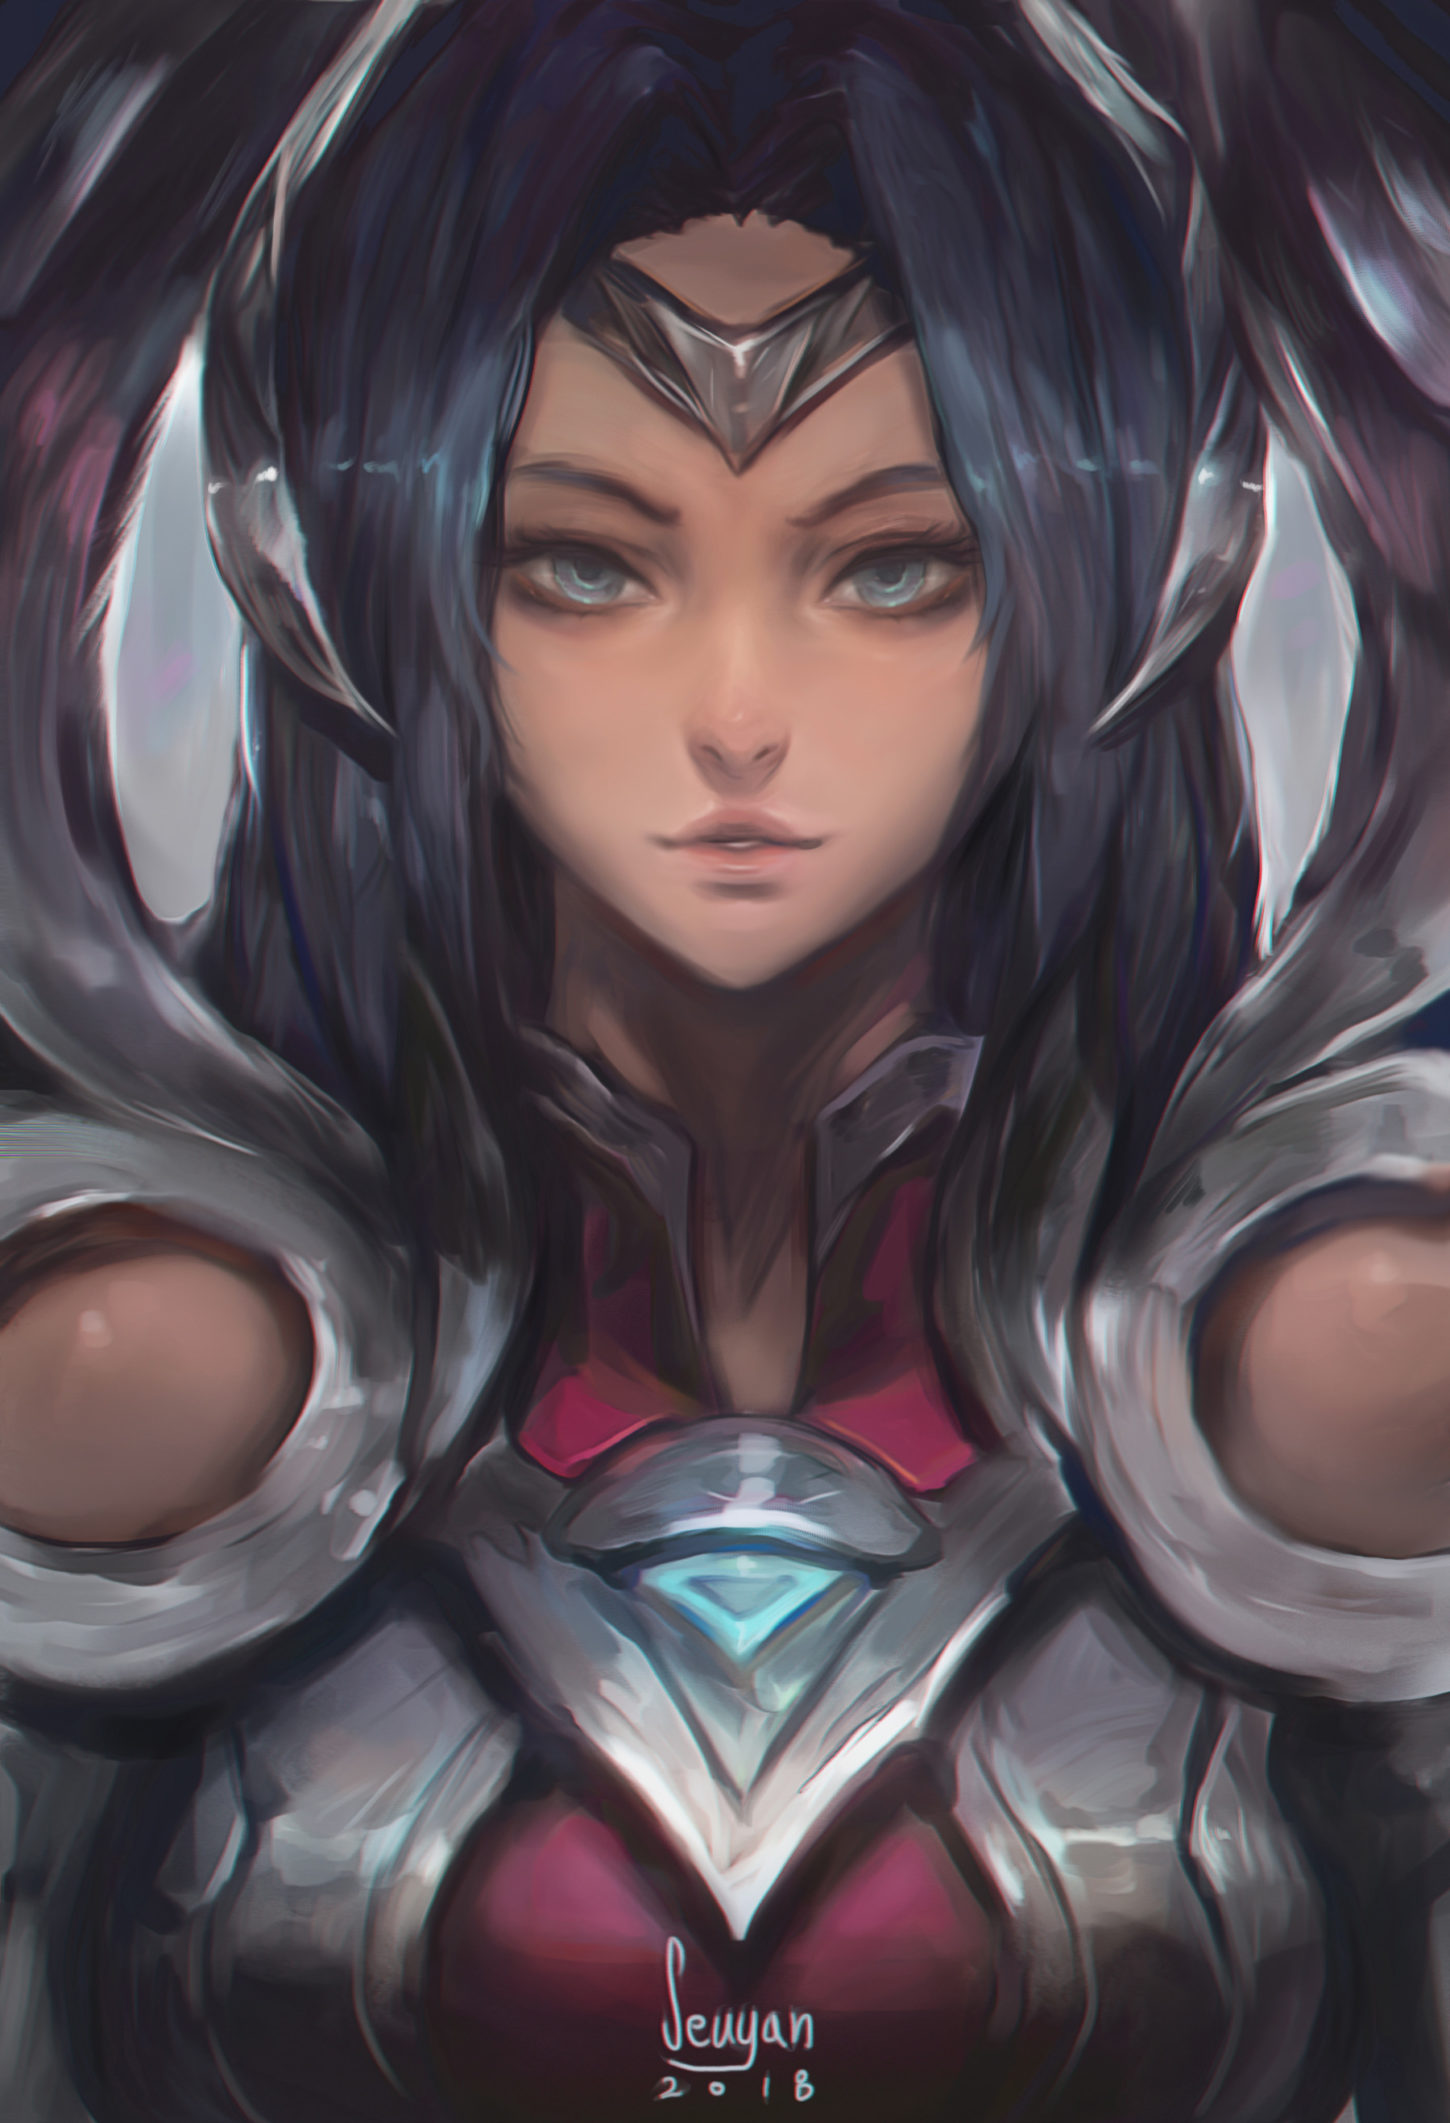 League fan arts, Seuyan art_03